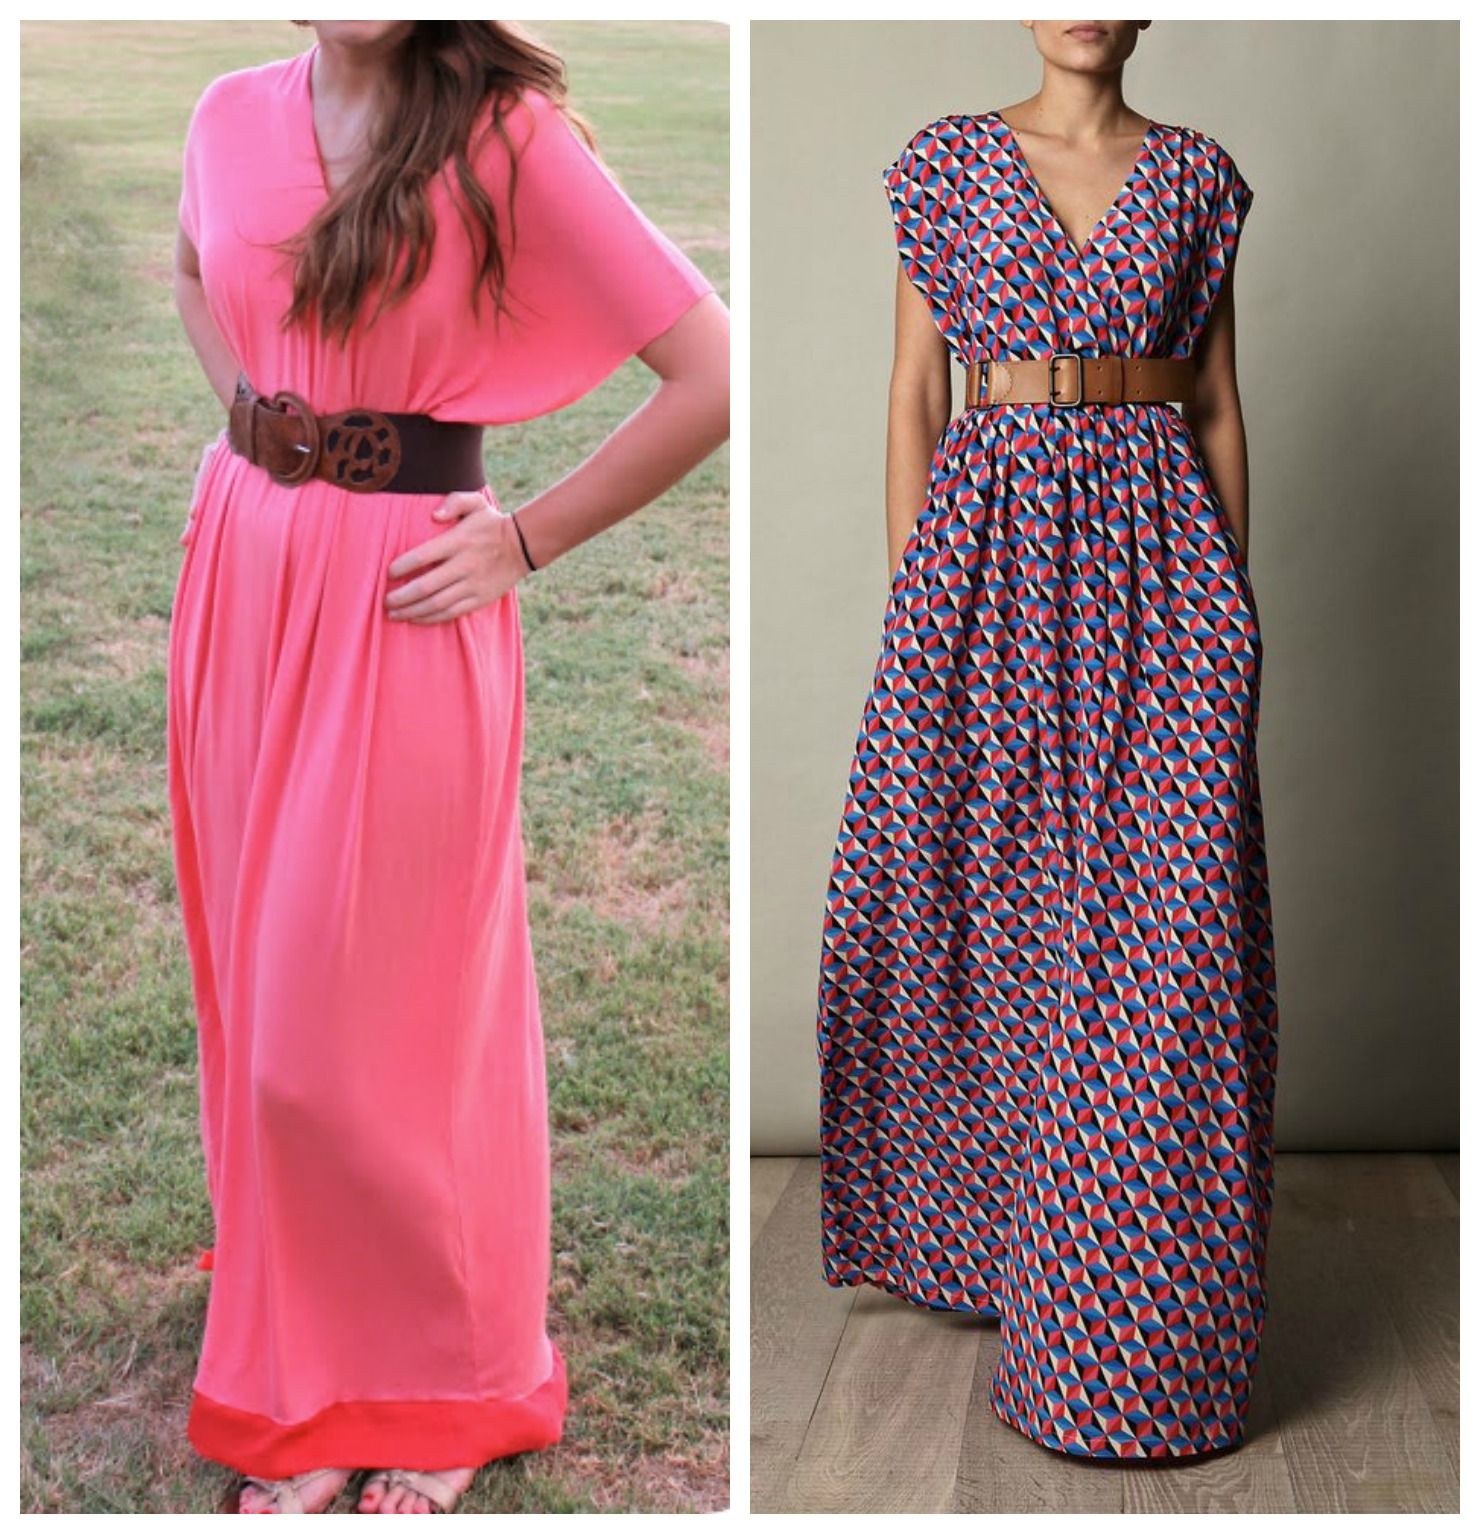 Boho Maxi Dress - Easy Maxi Dress Sewing Tutorial - Super einfach zu ...